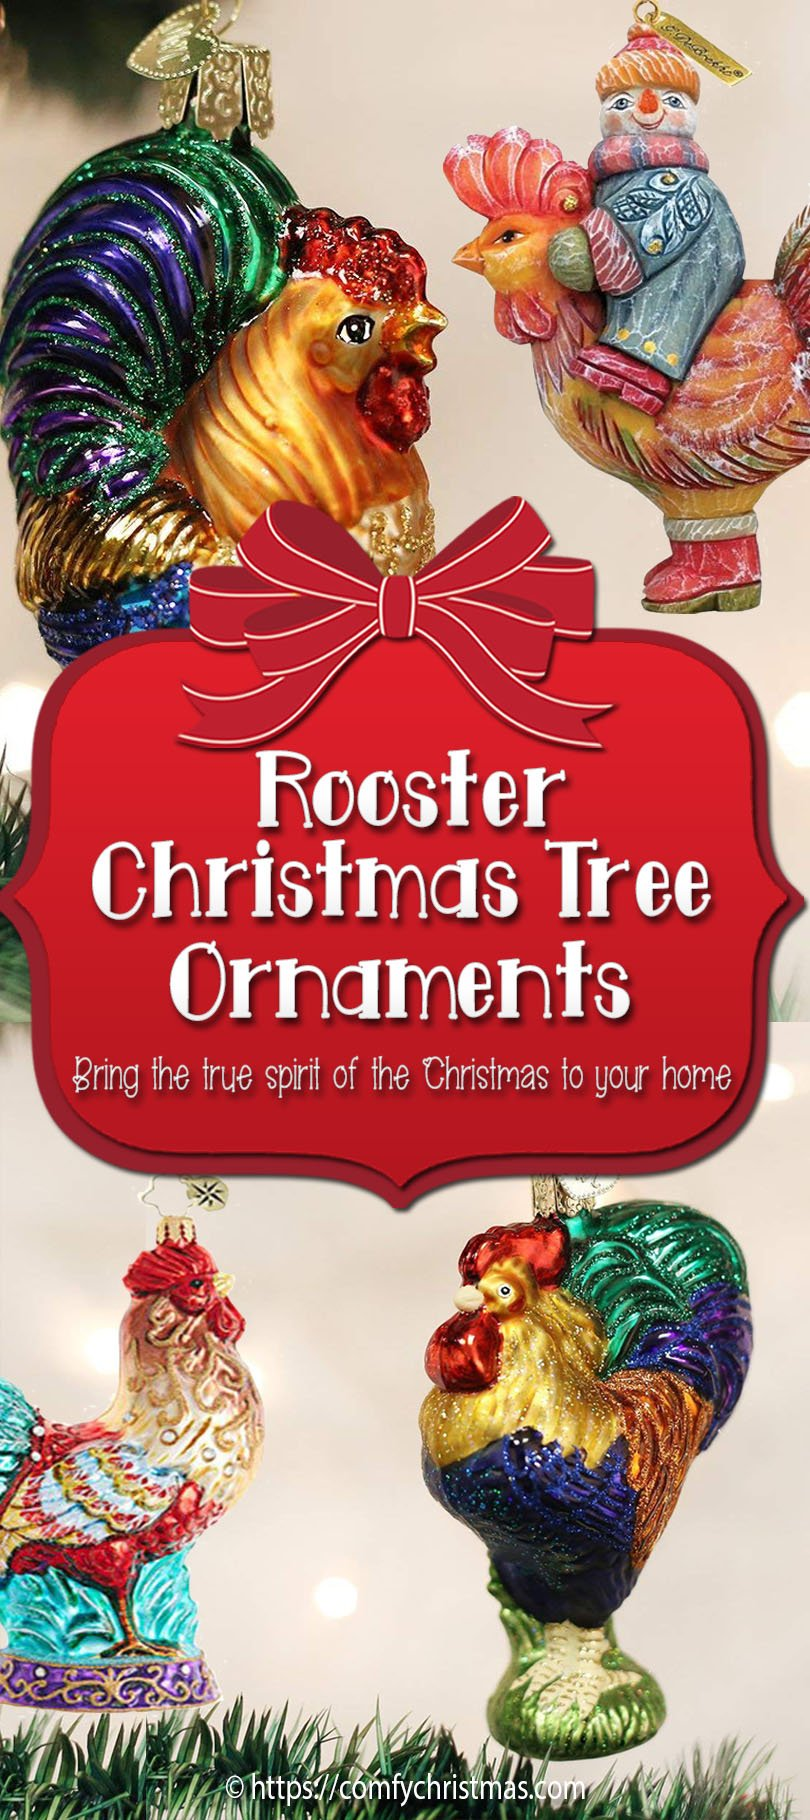 Rooster Christmas Tree Ornaments